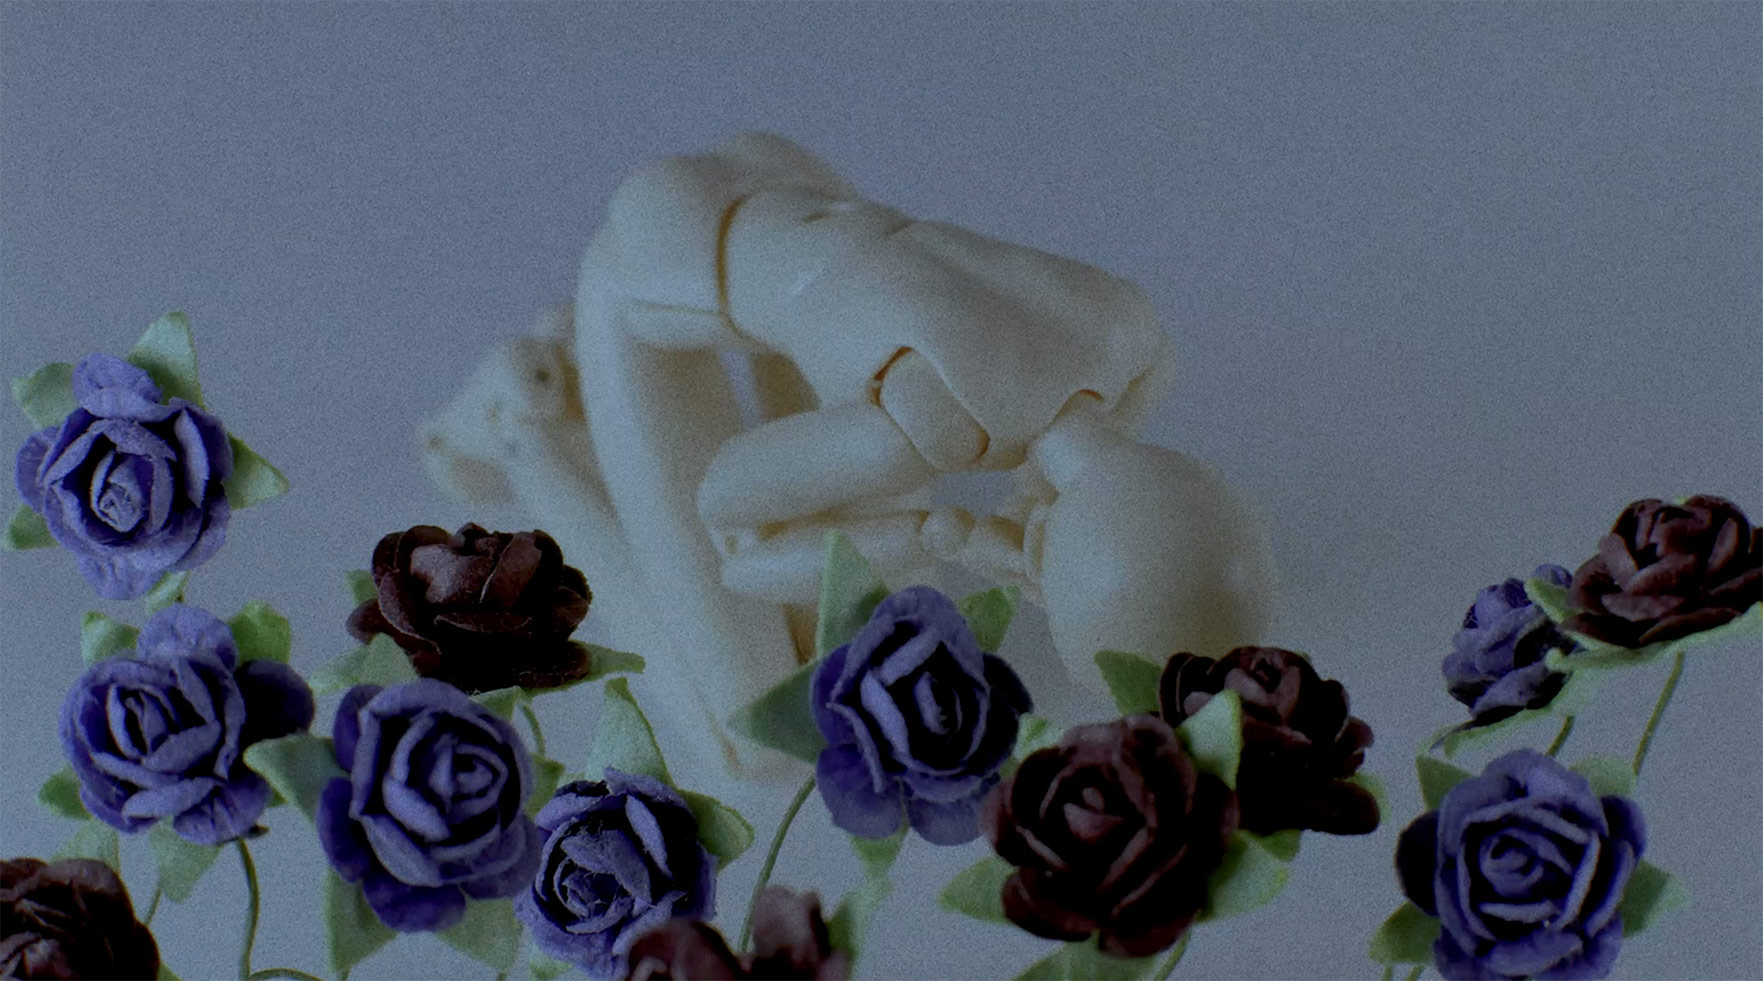 Chelsea Wolfe and Emma Ruth Rundle - Anhedonia